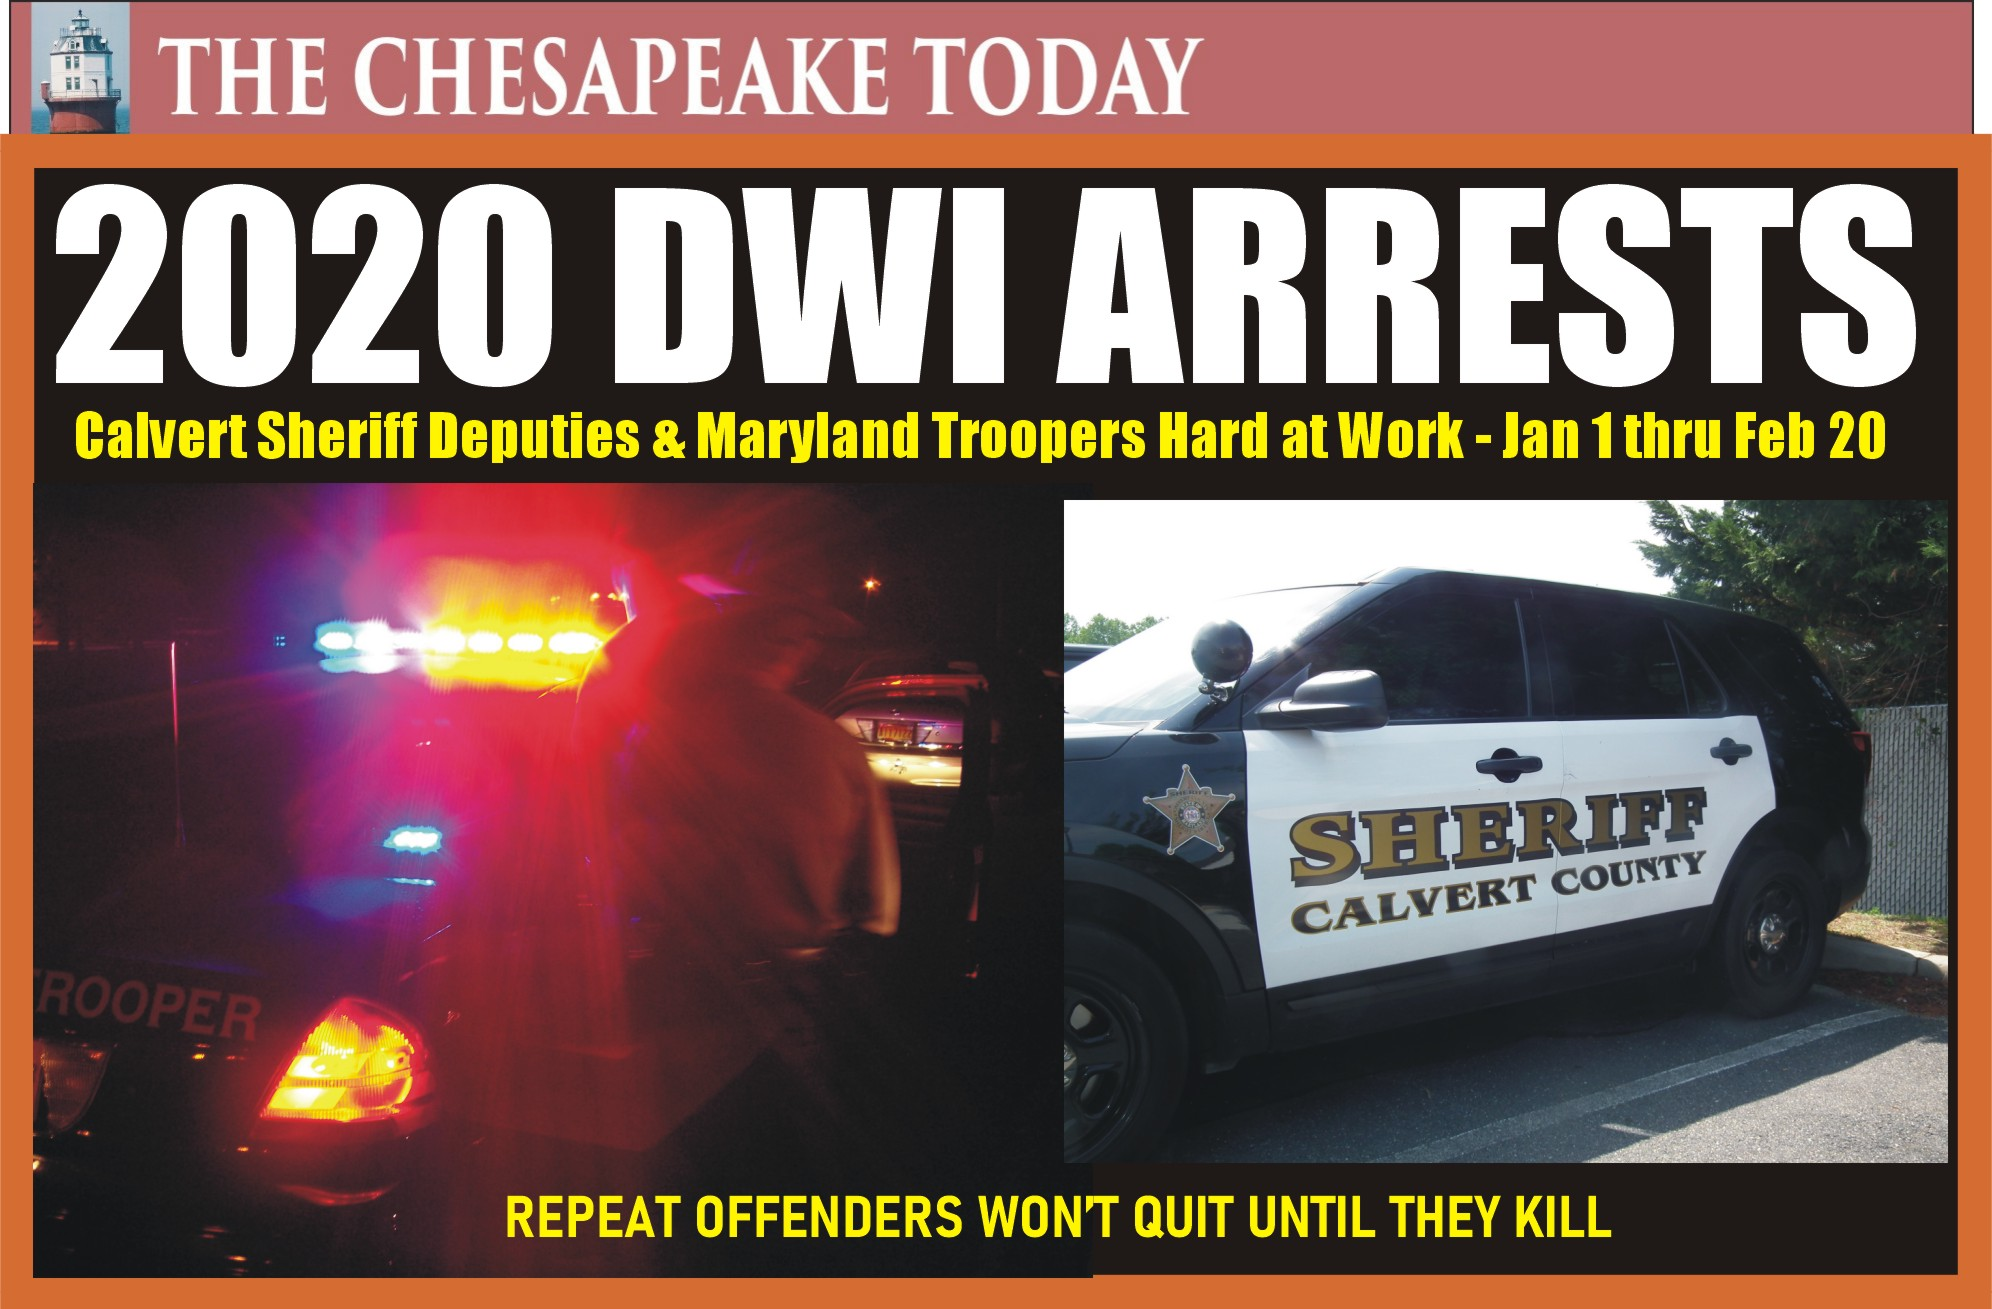 DWI HIT PARADE: Calvert County DUI arrests for January 1 thru Feb. 19, 2020, by Maryland State Police and Calvert Sheriff's Department